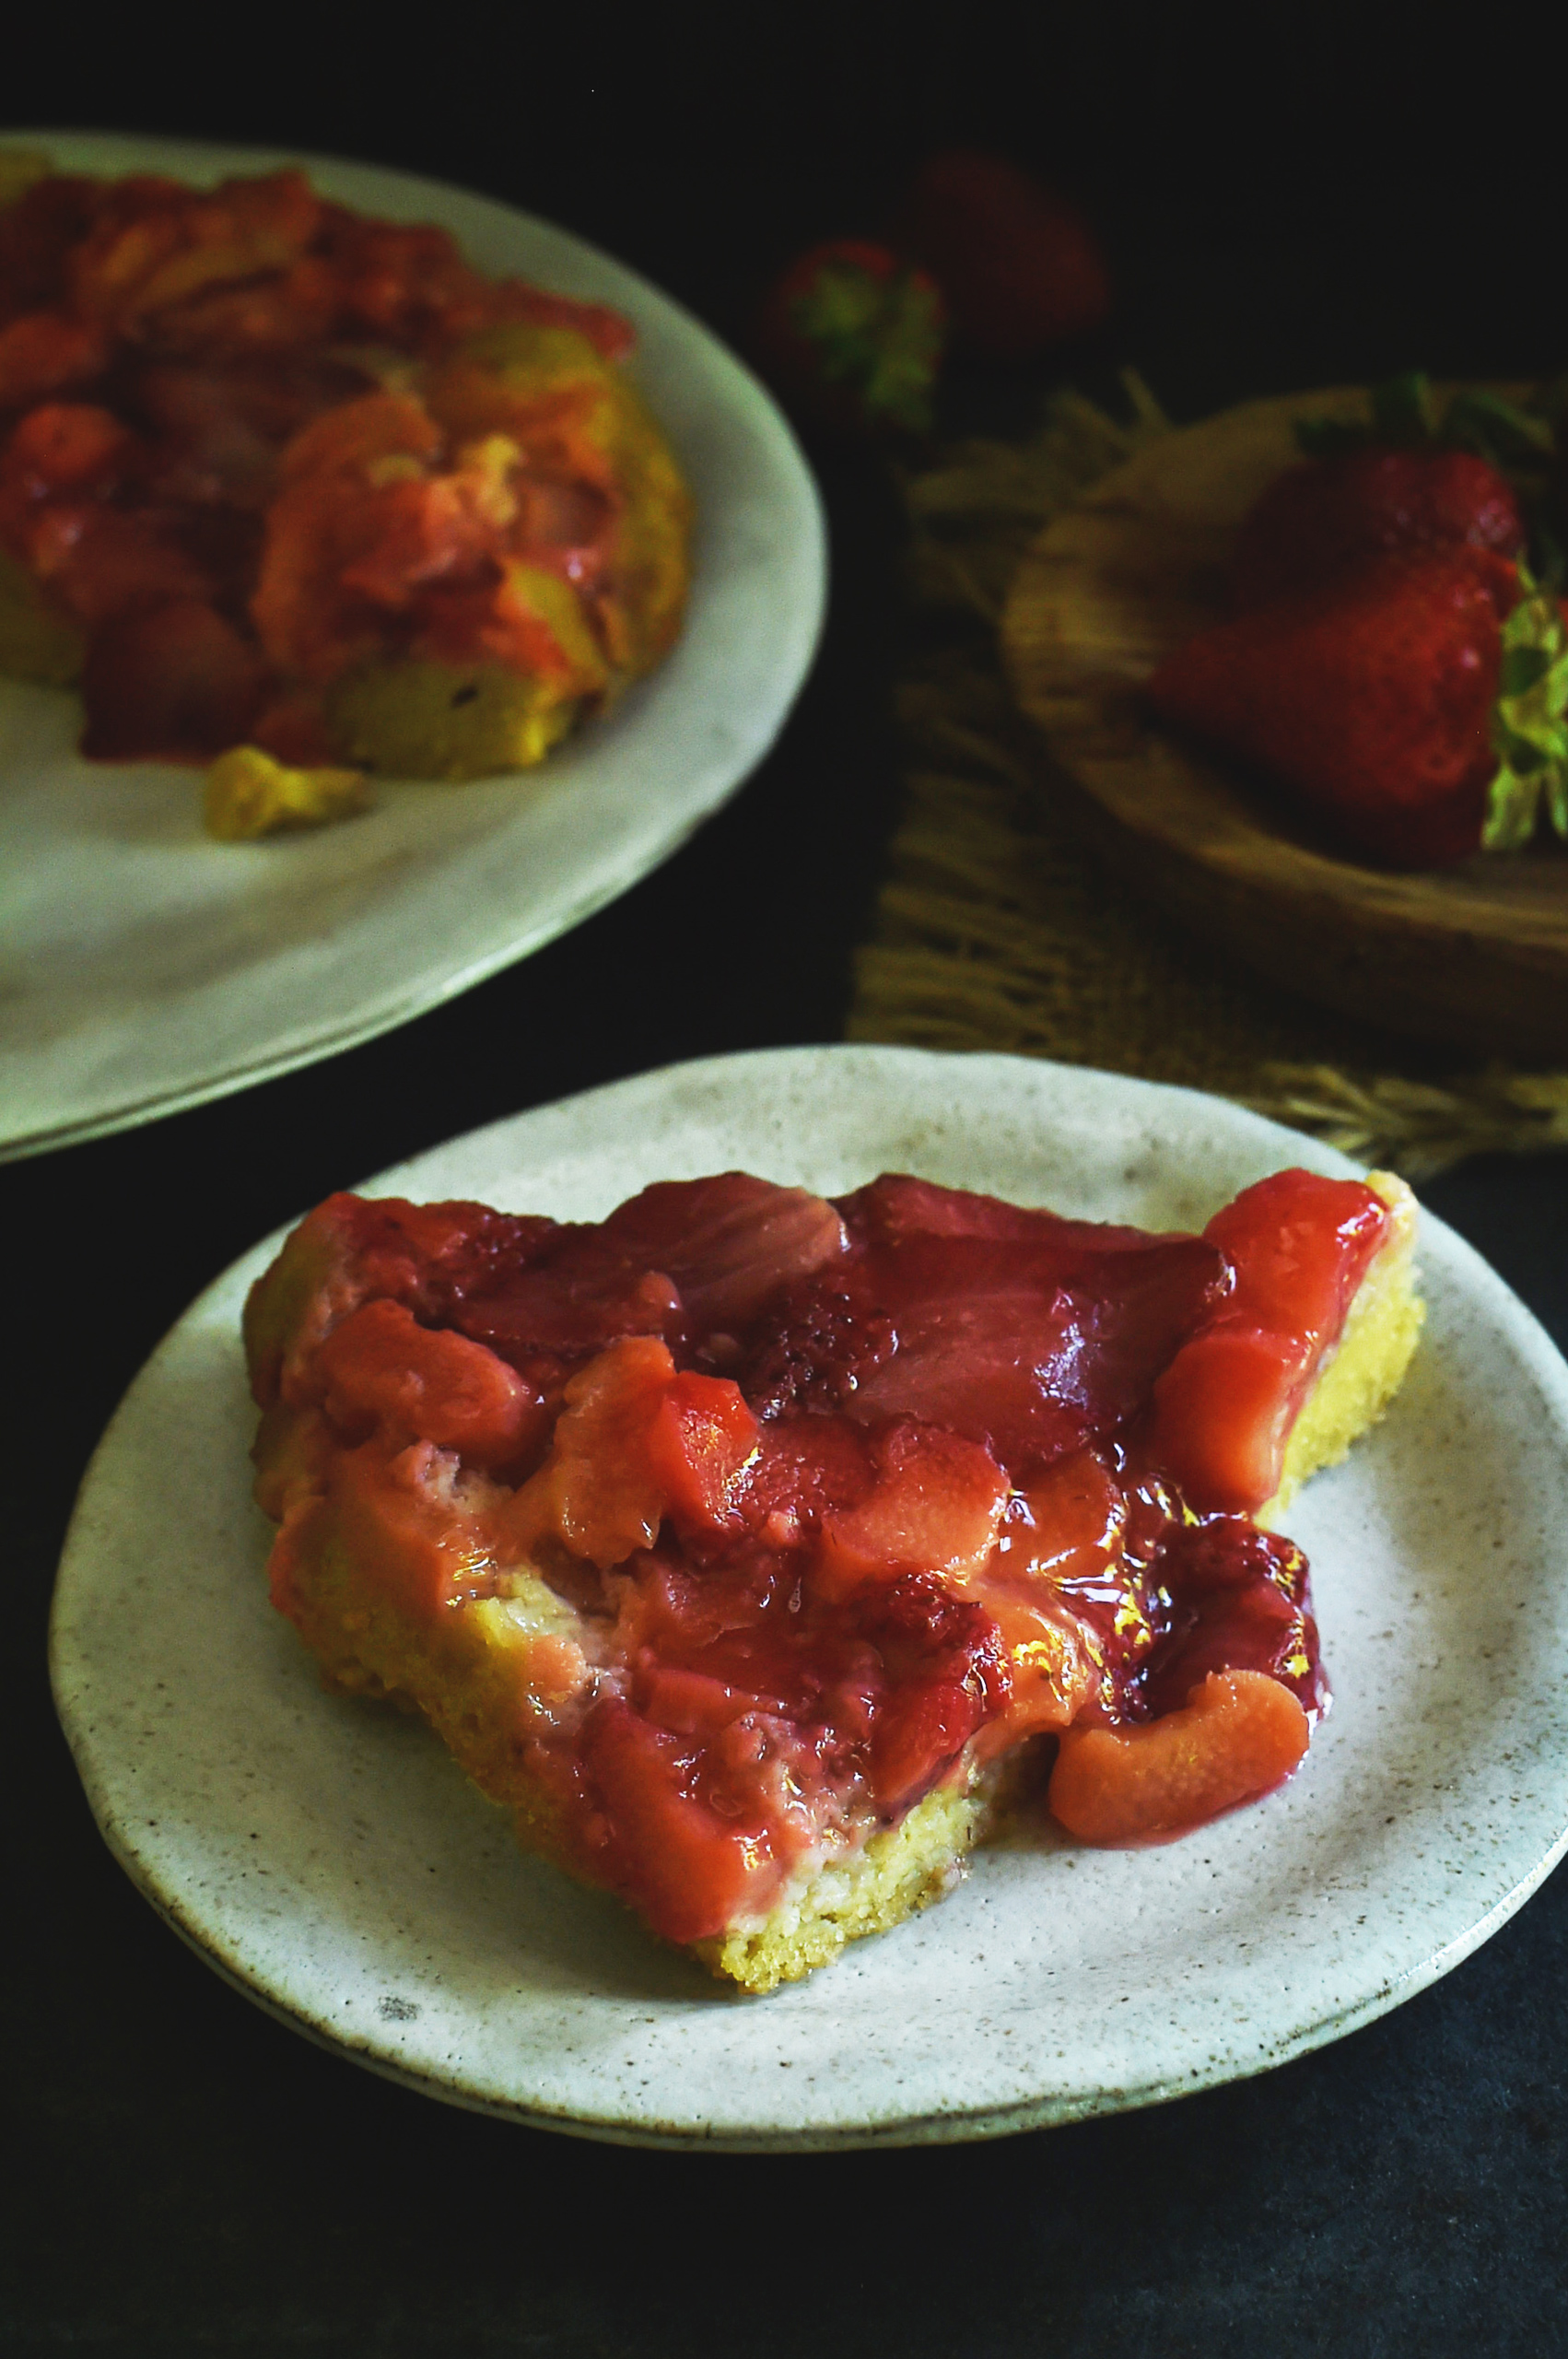 Low-Carb Strawberry Rhubarb Upside-Down Cake served on a plate.